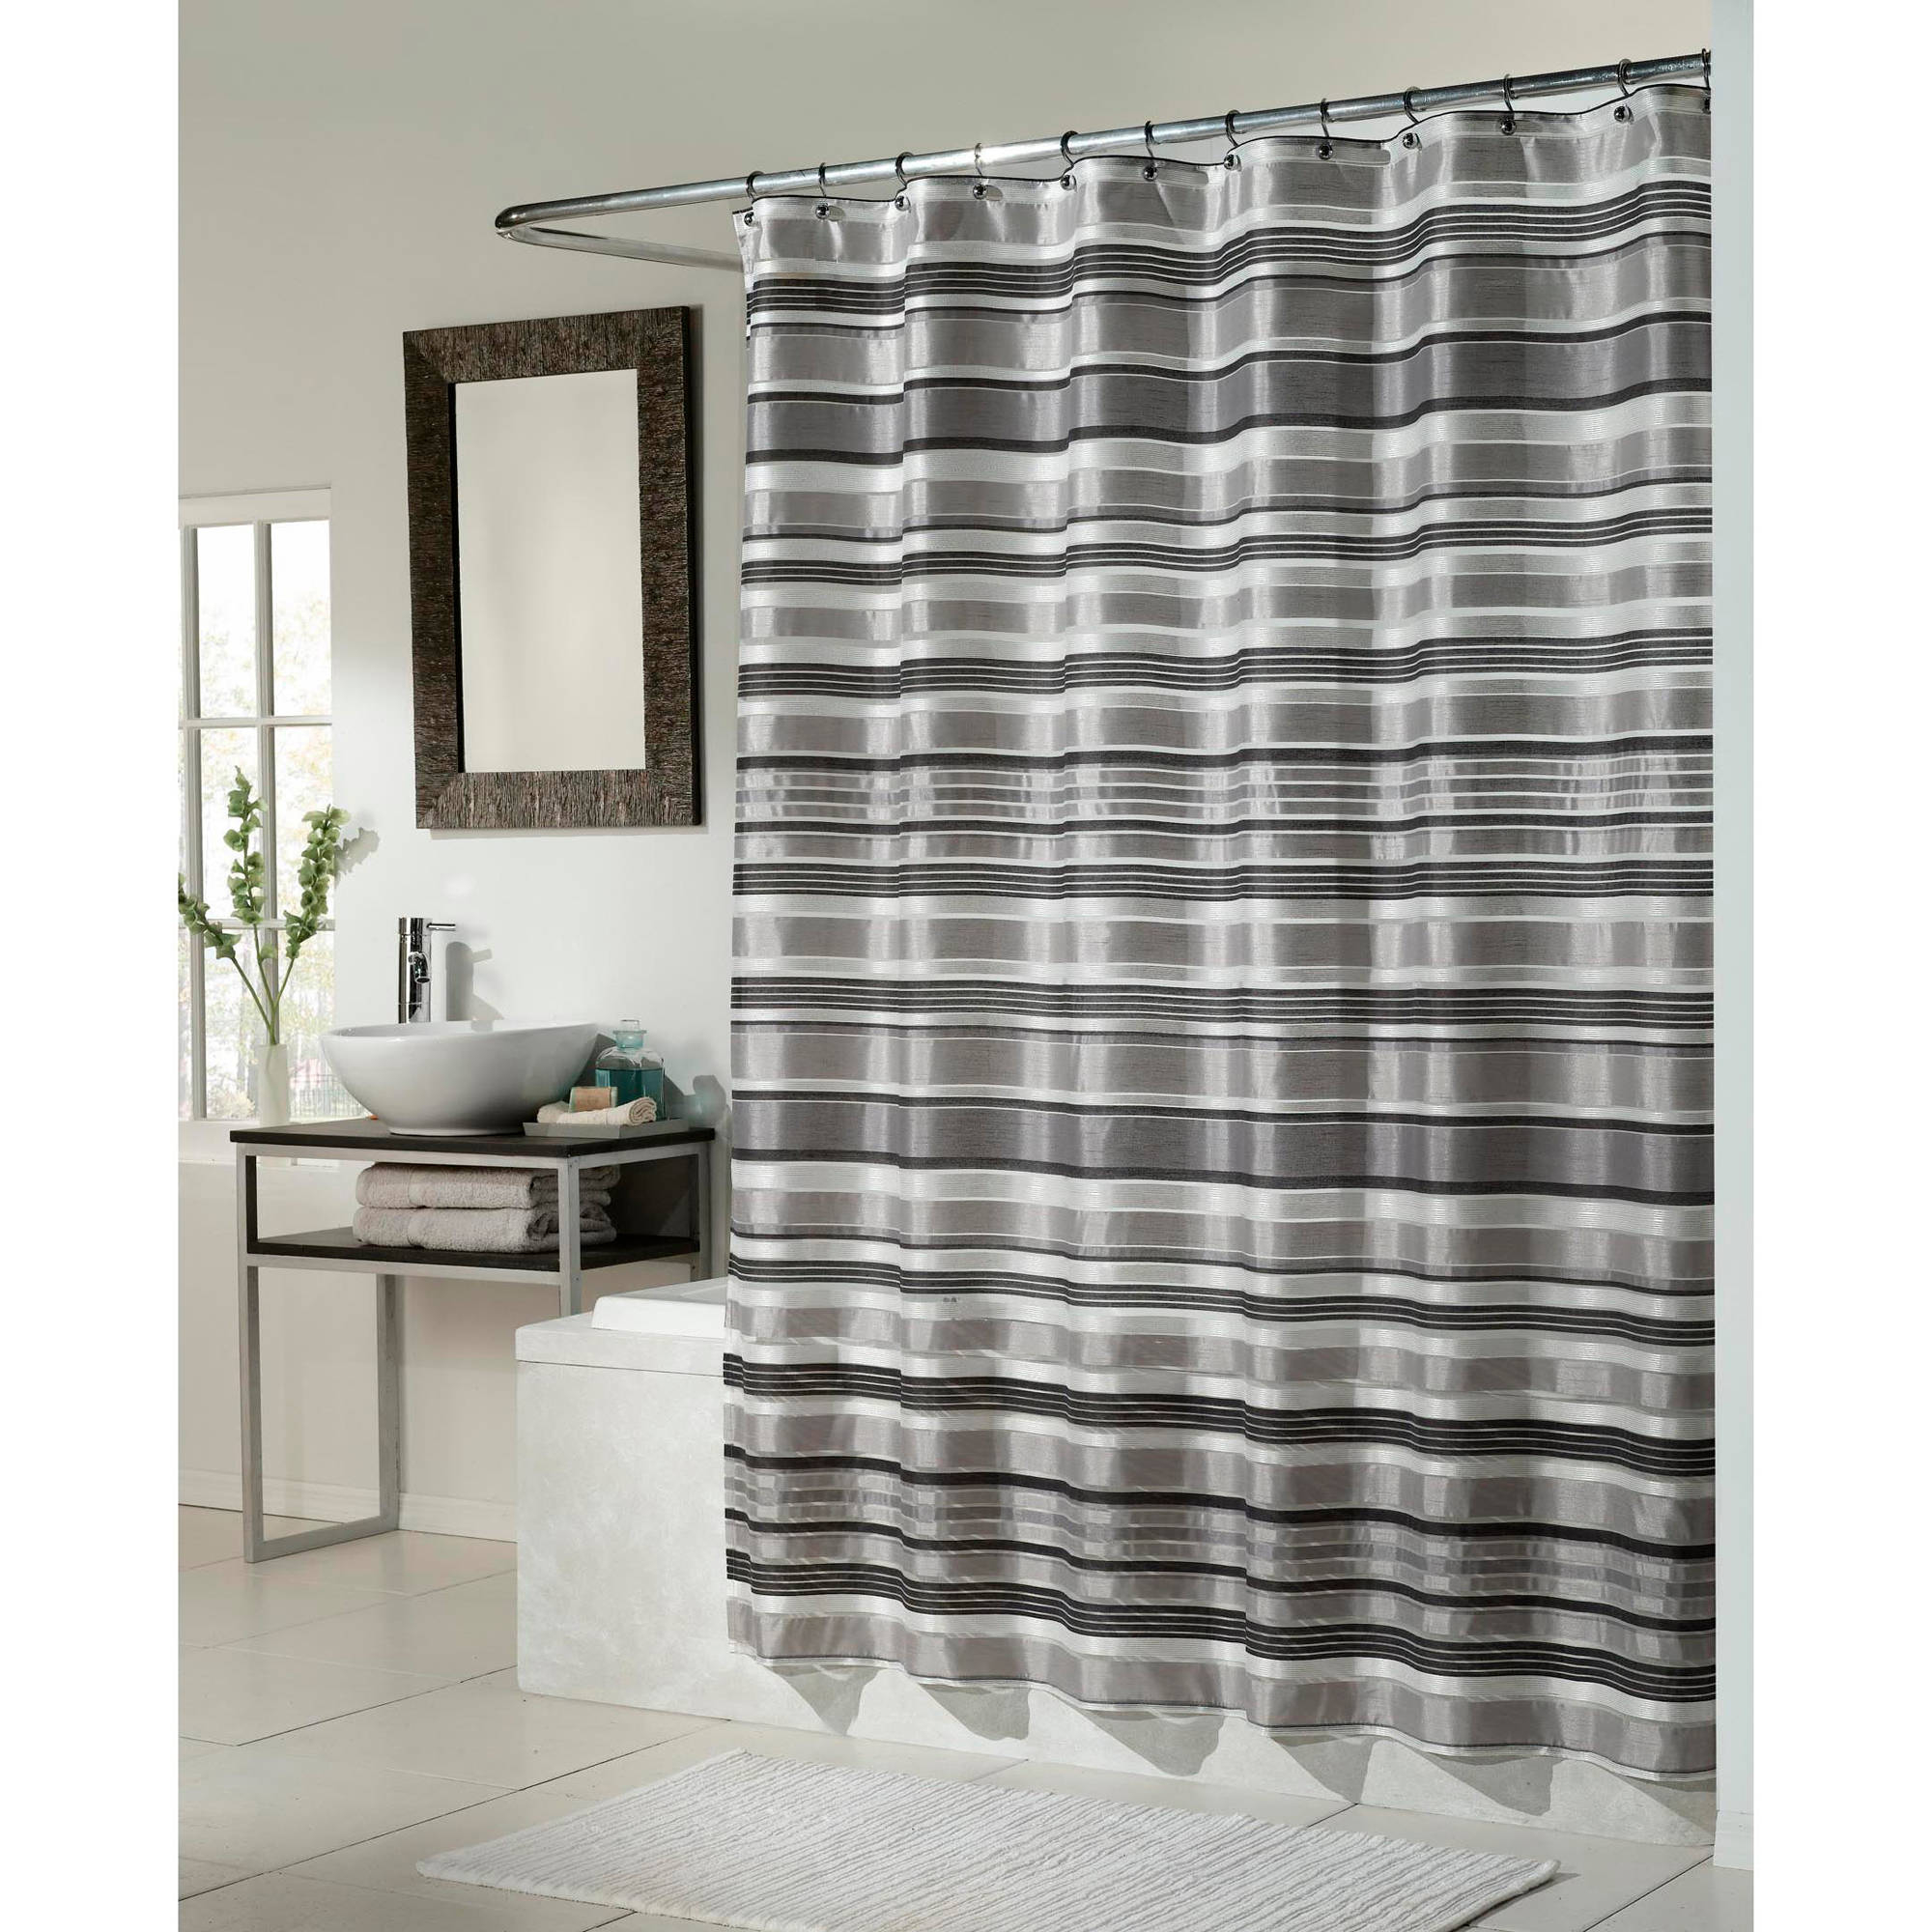 rooms shower decor pictures tips hgtv striped yellow bathrooms bathroom from ideas design curtain